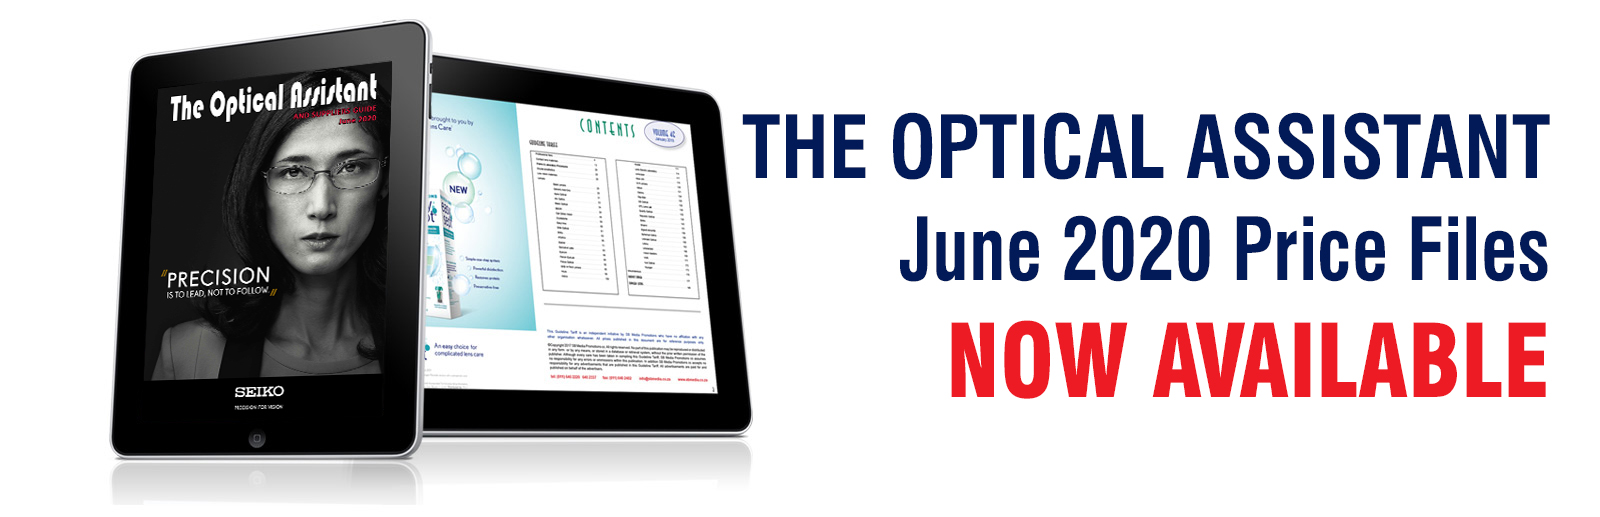 The Optical Assistant, June 2020 Price Files